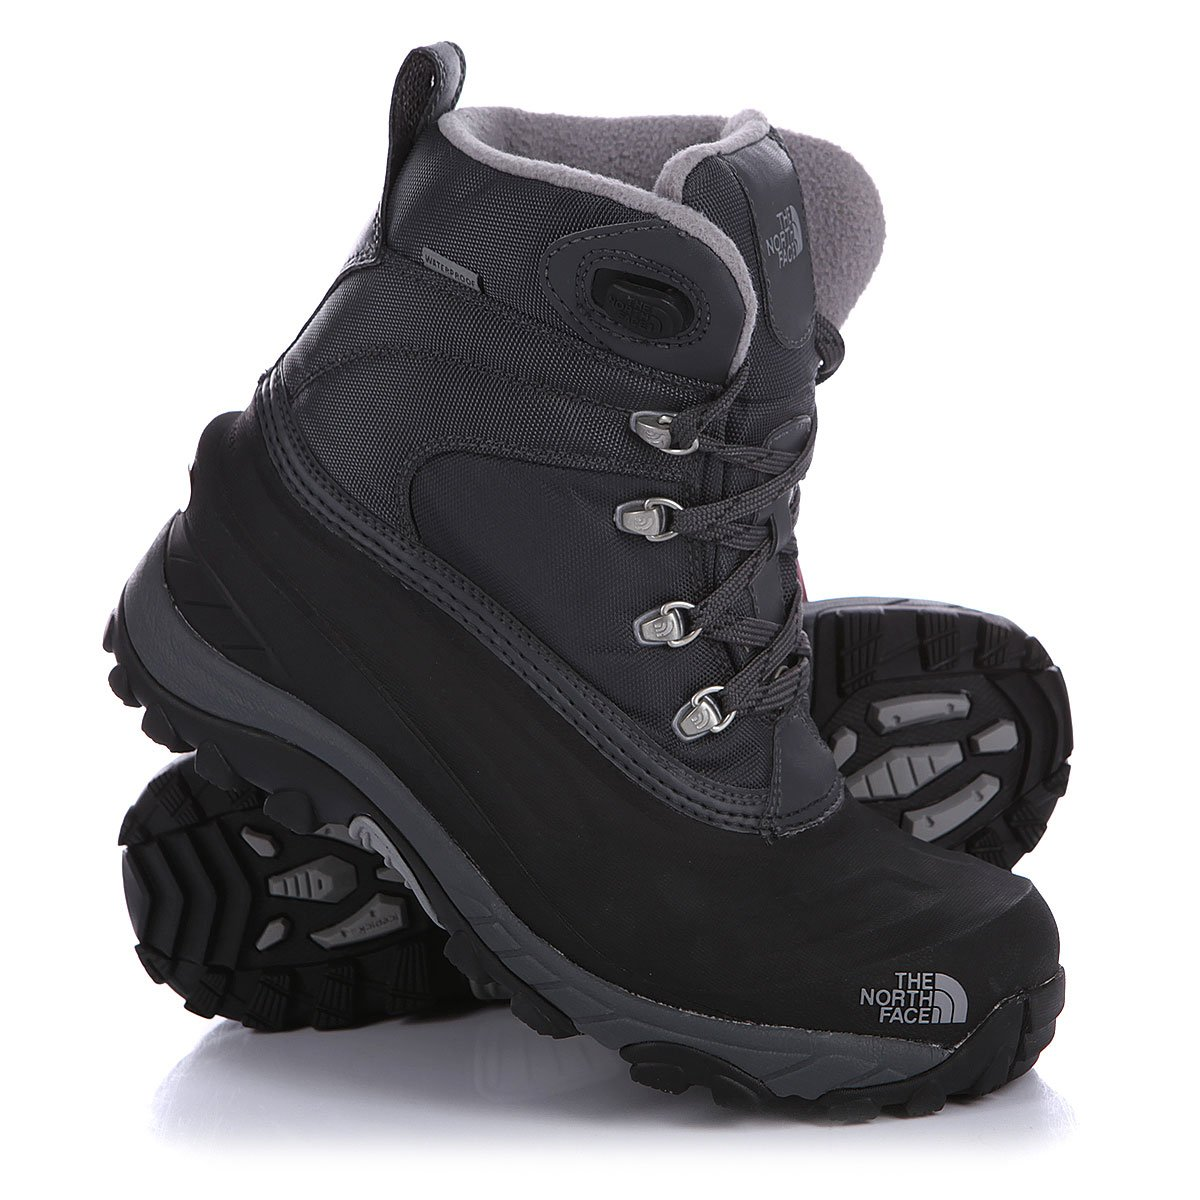 Купить ботинки зимние The North Face Chilkat Ii Nyl Eu Black Grey в ... 92556b2bf50